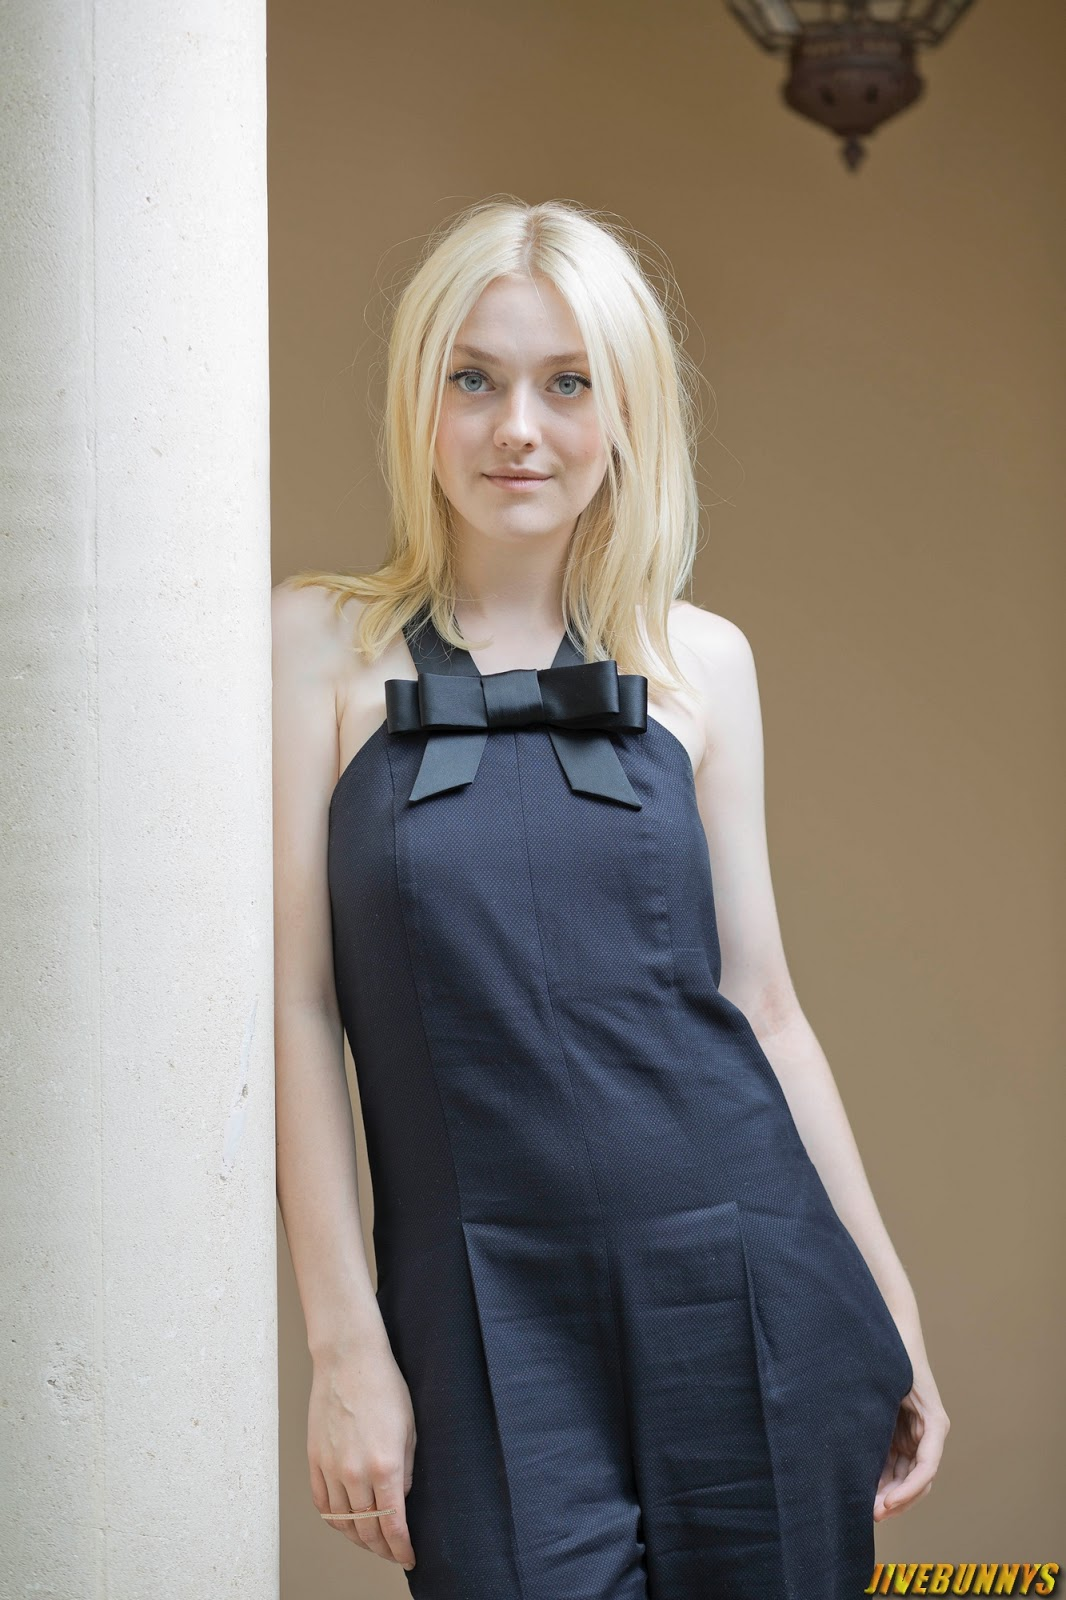 Dakota Fanning Filmography: Dakota Fanning Hot Photos Gallery 3